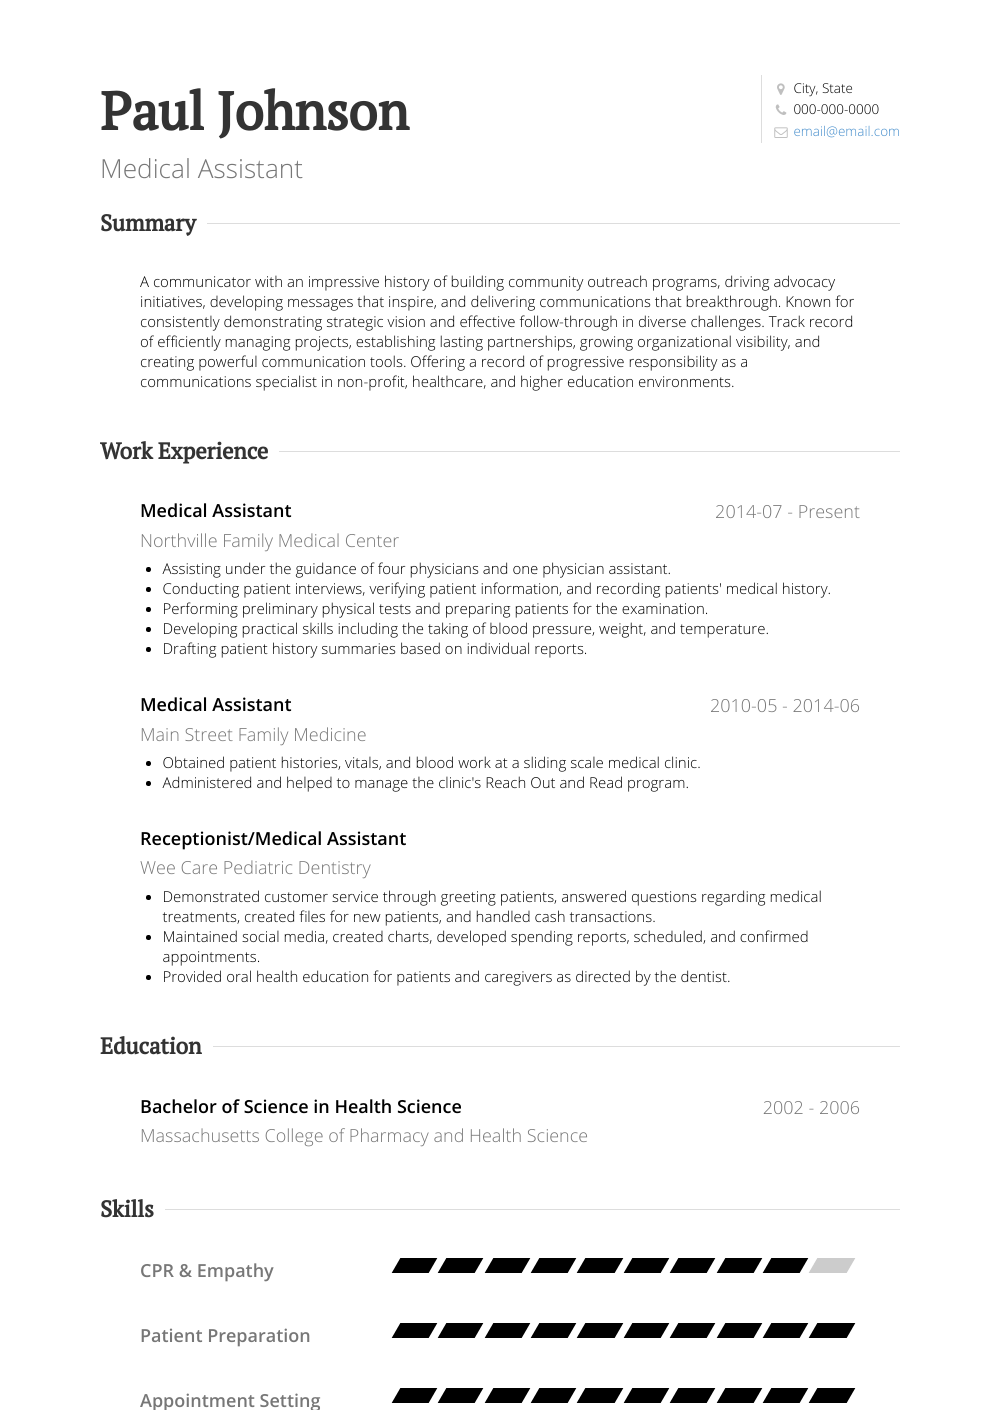 Medical Assistant Resume Sample and Template